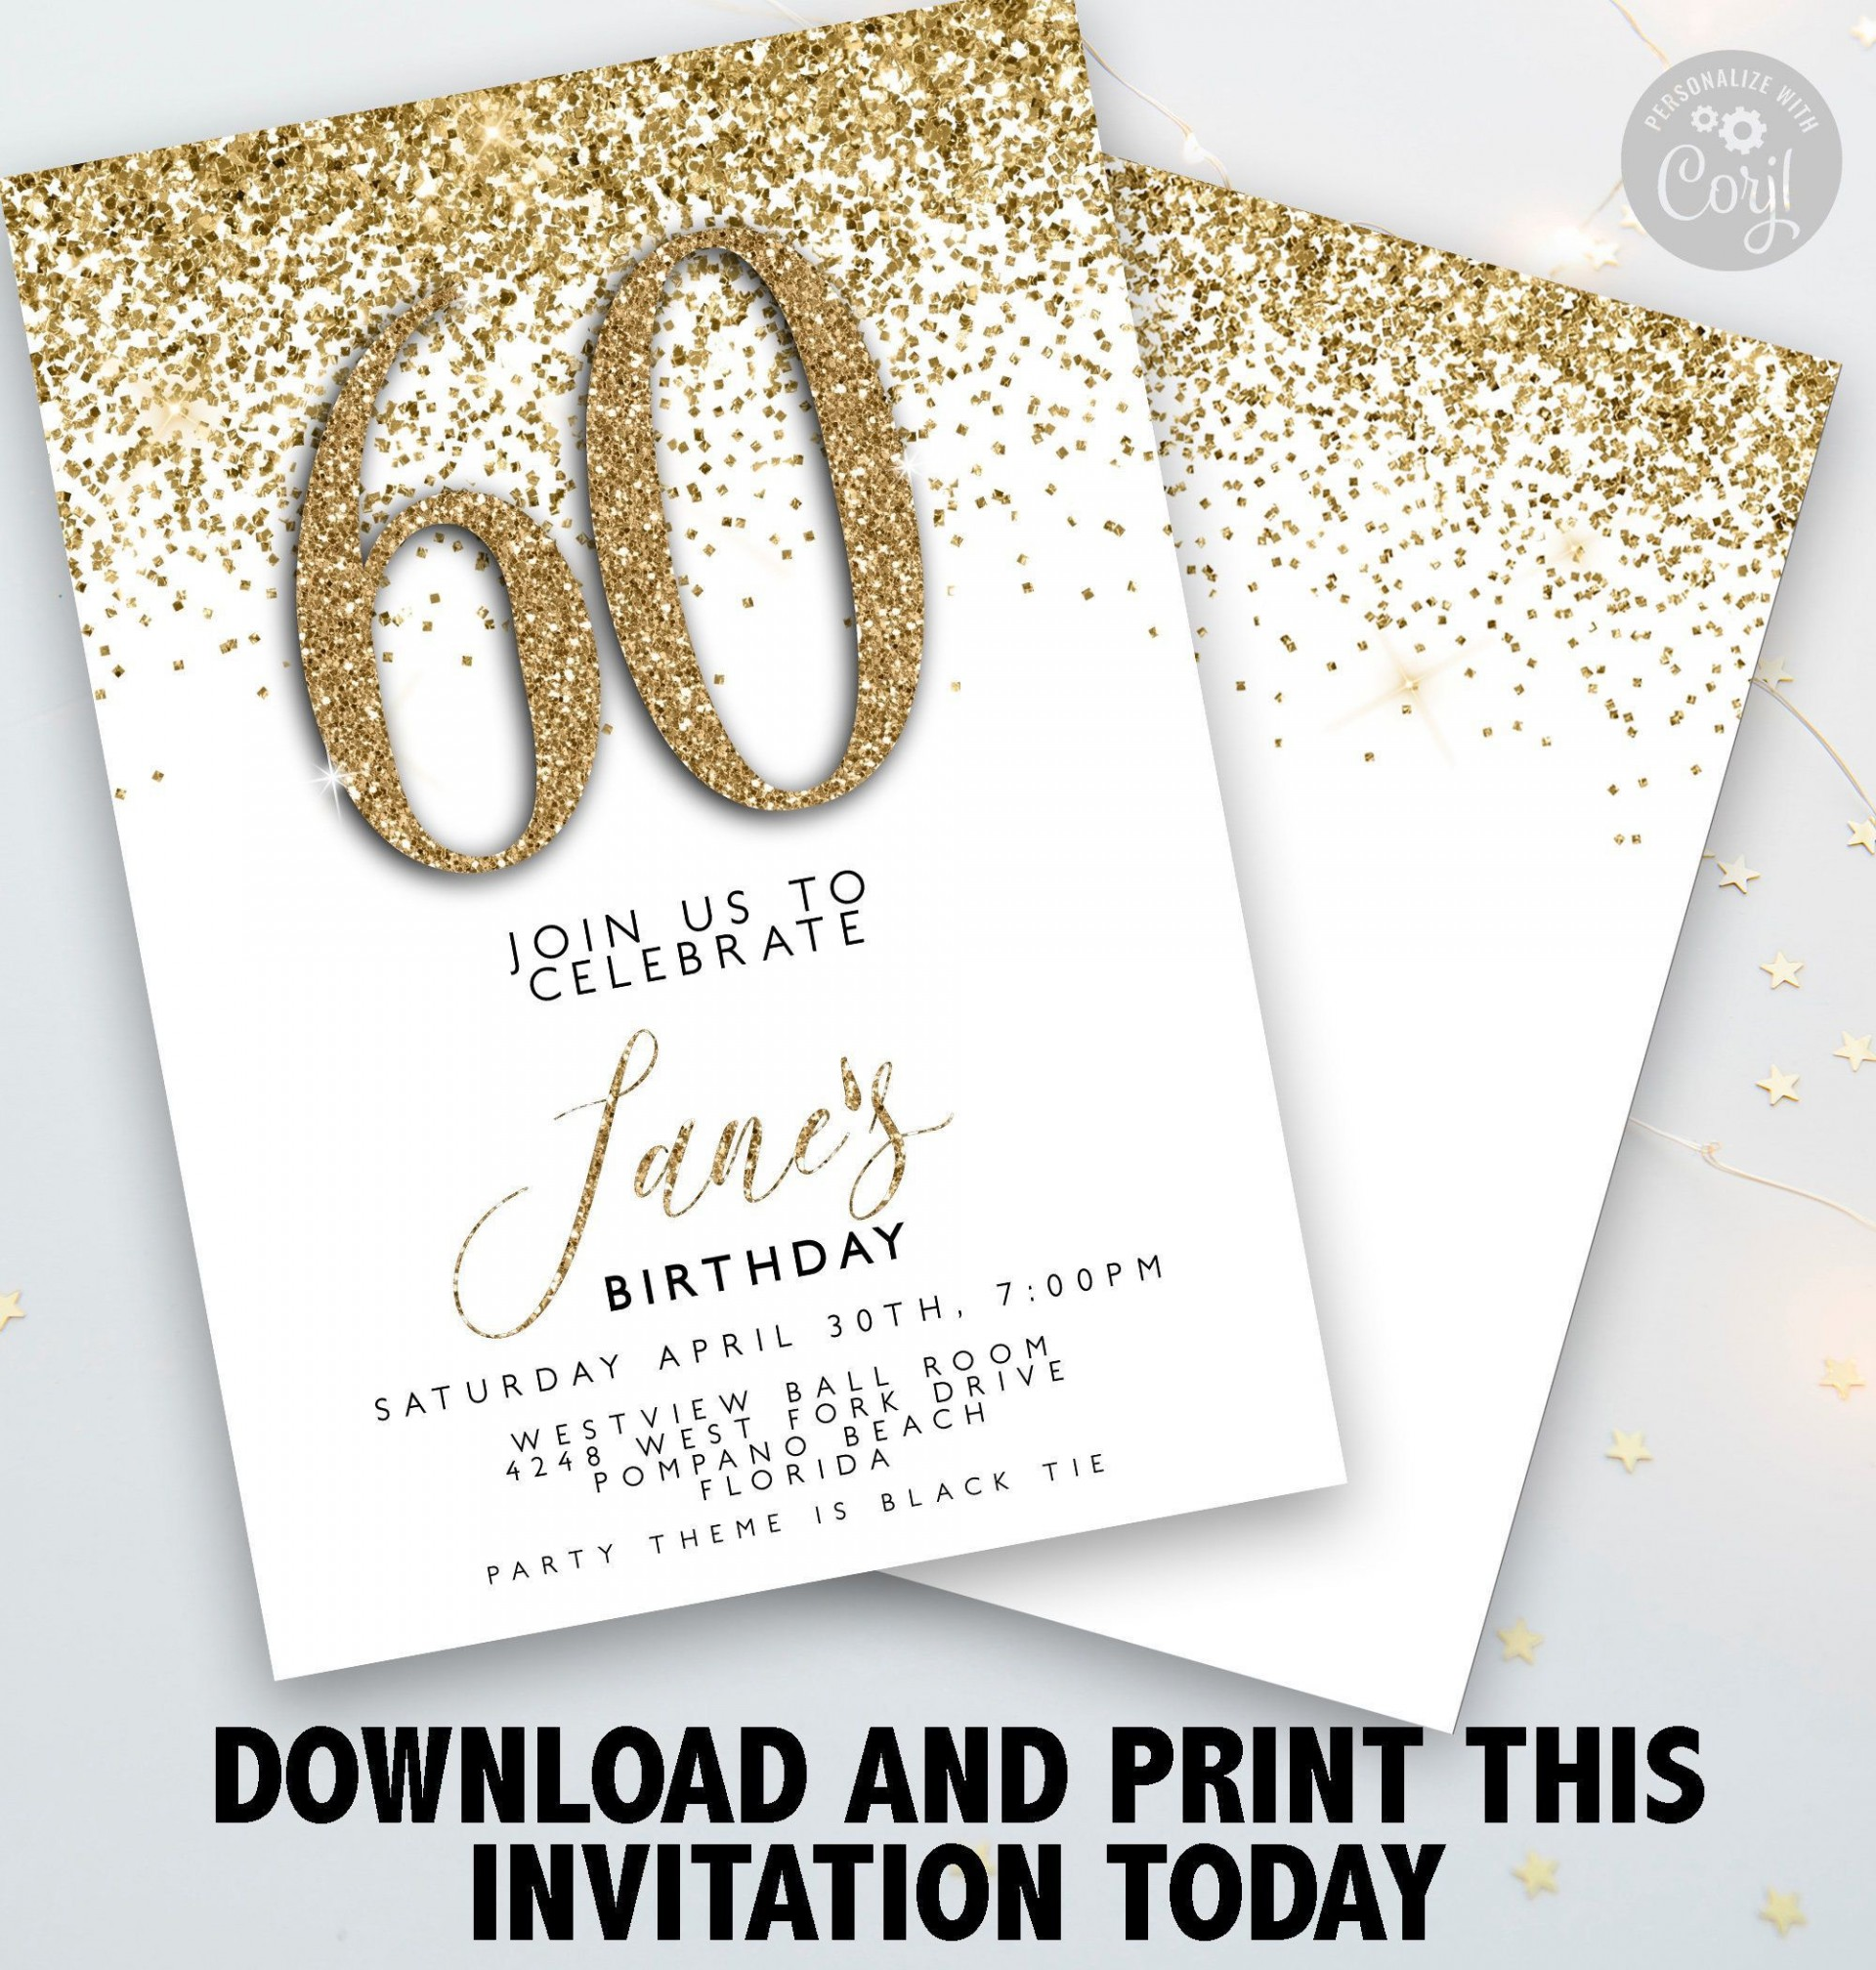 003 Remarkable 60 Birthday Invite Template Example  Templates 60th Printable Free1920